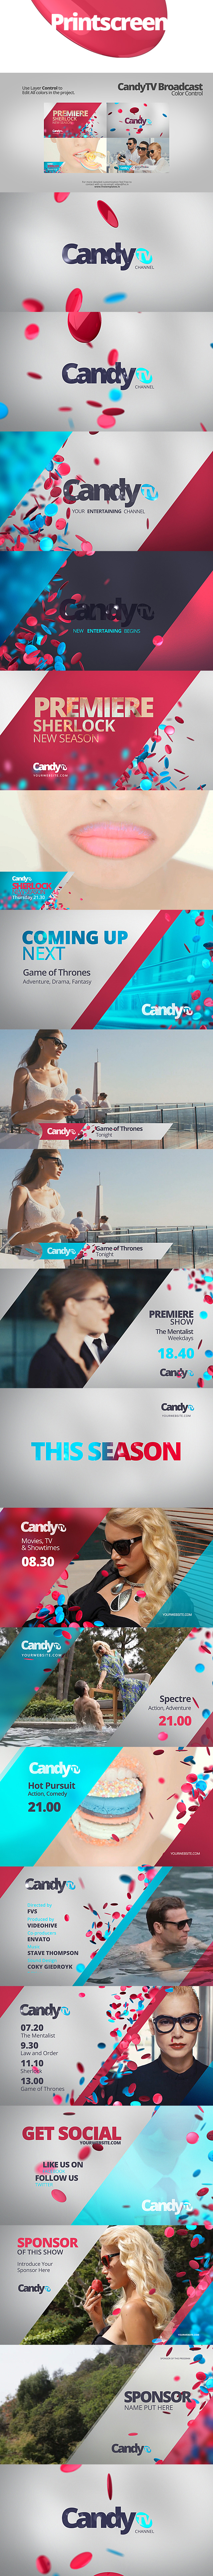 CandyTV Broadcast ID - 1